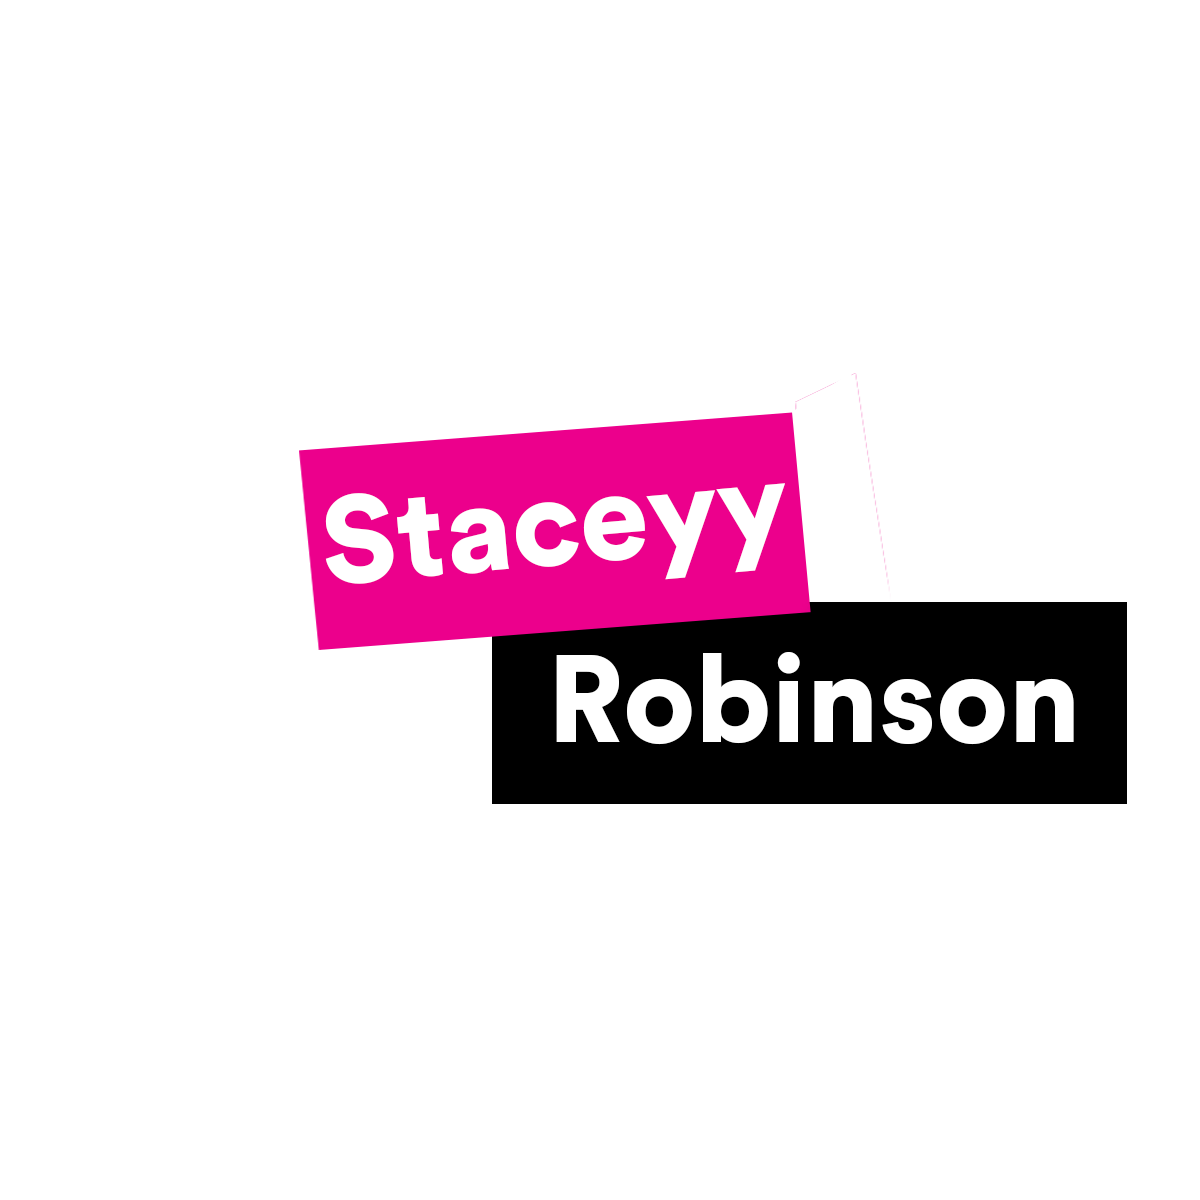 Staceyy Robinson